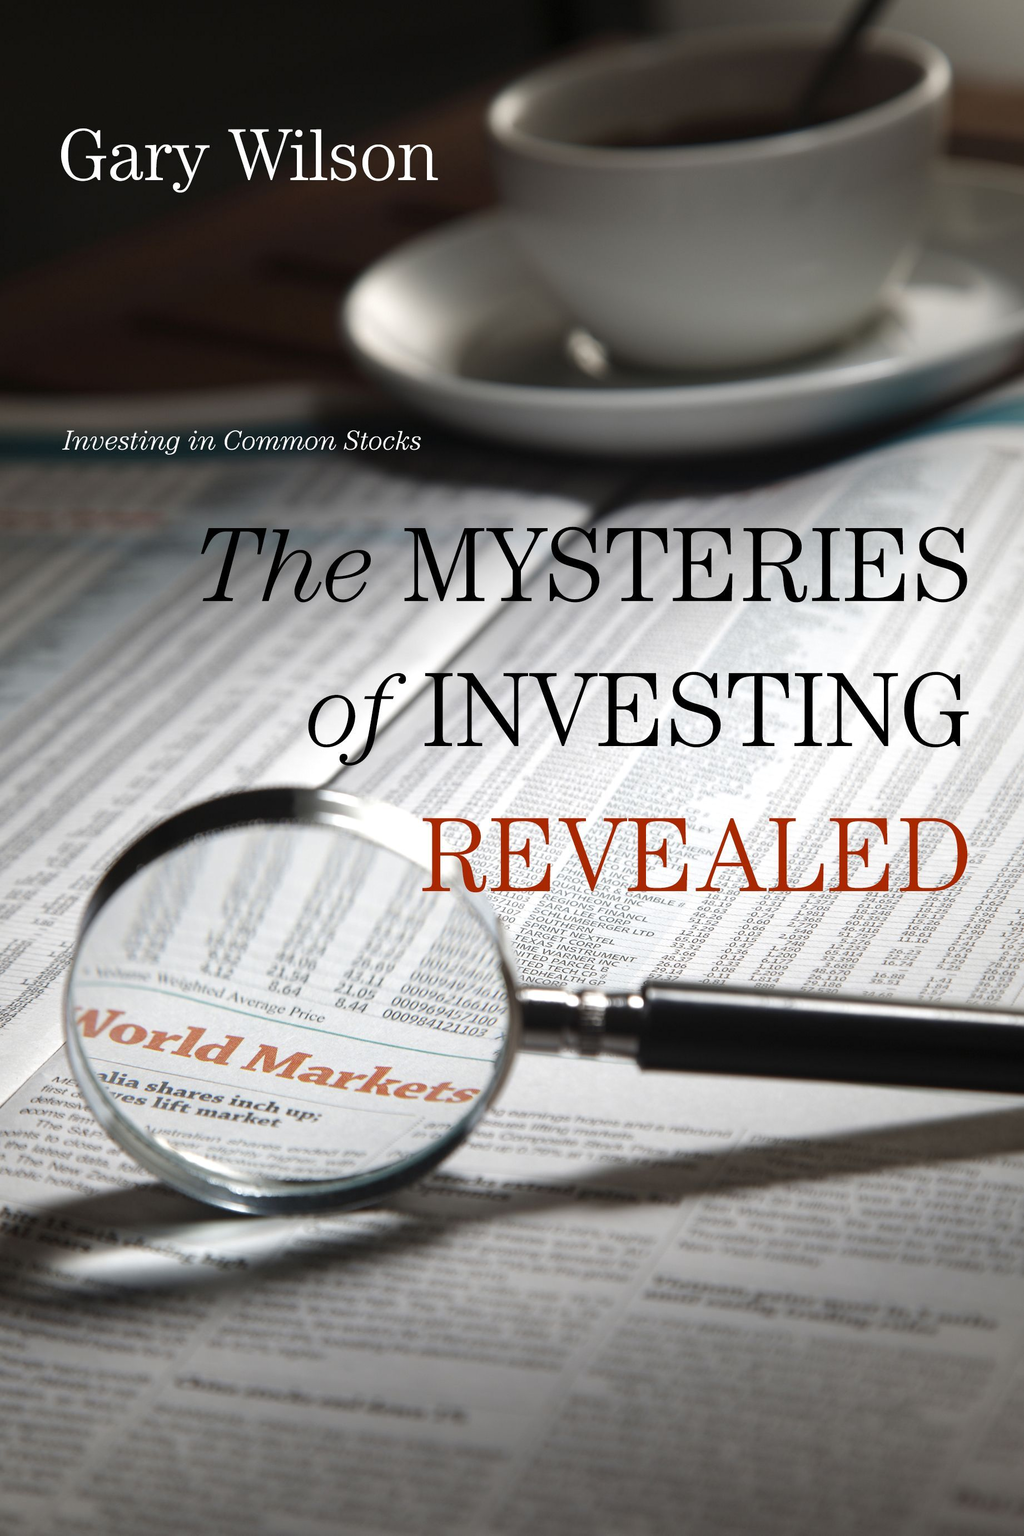 The Mysteries of Investing Revealed: Investing in Common Stocks